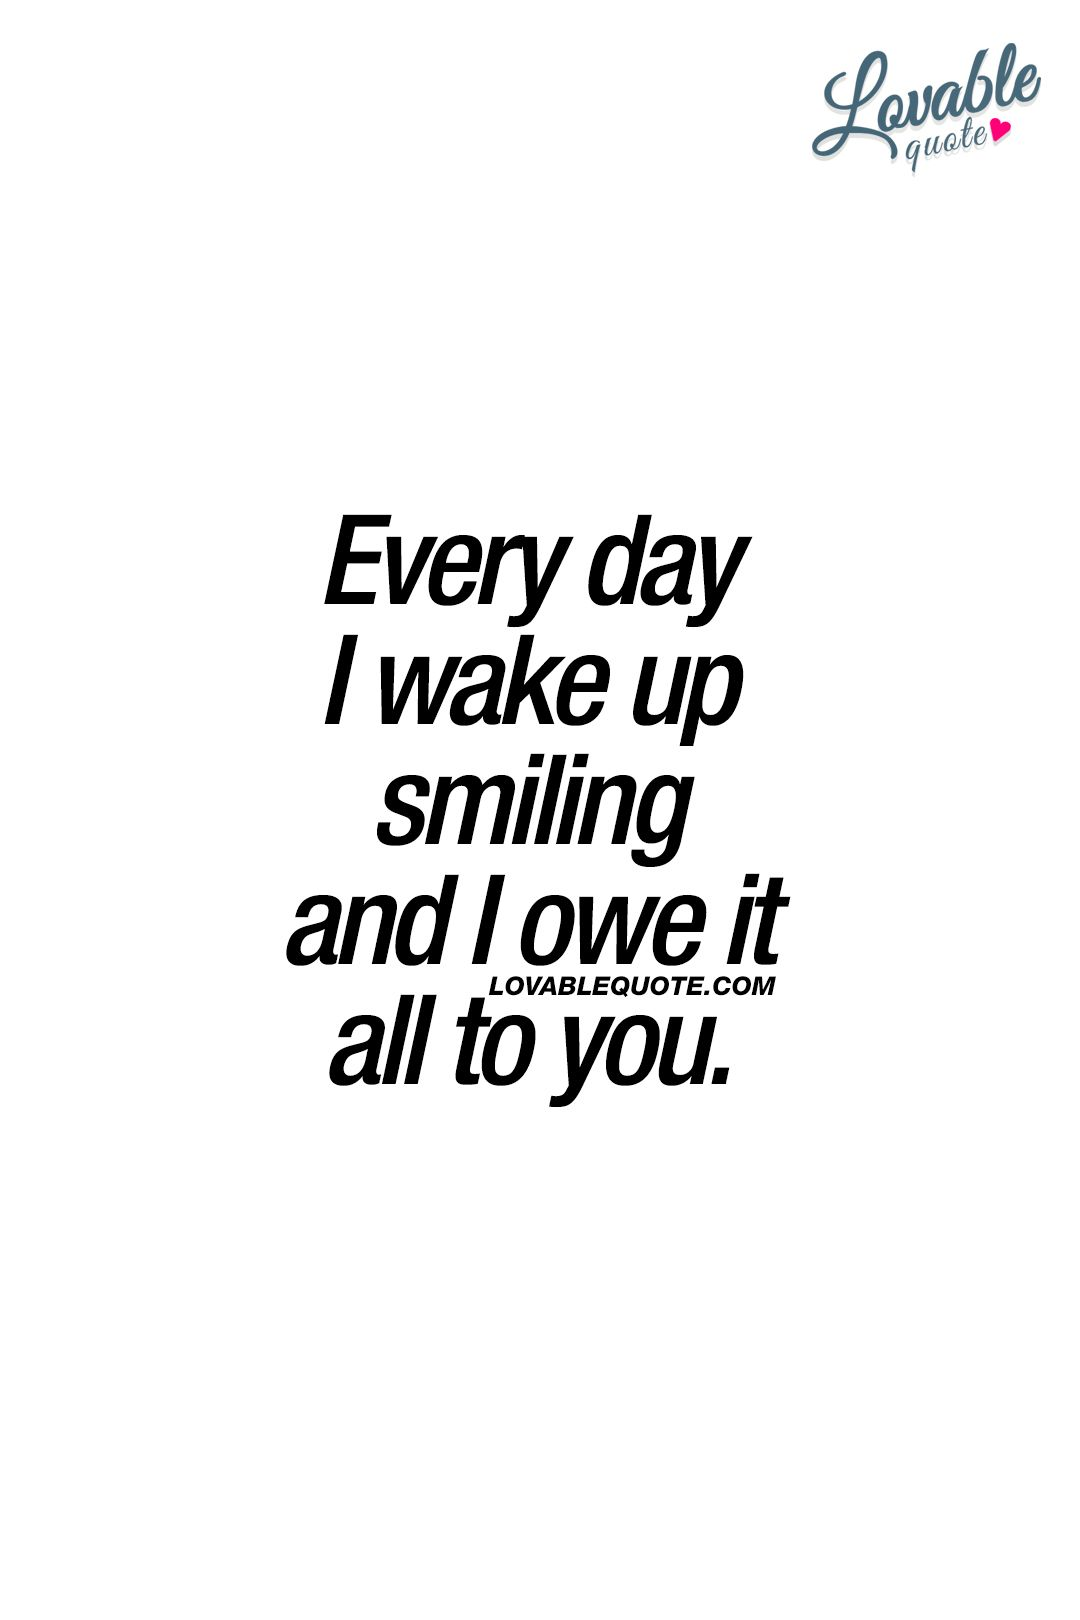 Every Day I Wake Up Smiling And I Owe It All To You Youmakemesmile Happiness Cutequotes Forhi Cute Quotes For Him Happy Quotes Smile Cute Quotes For Her